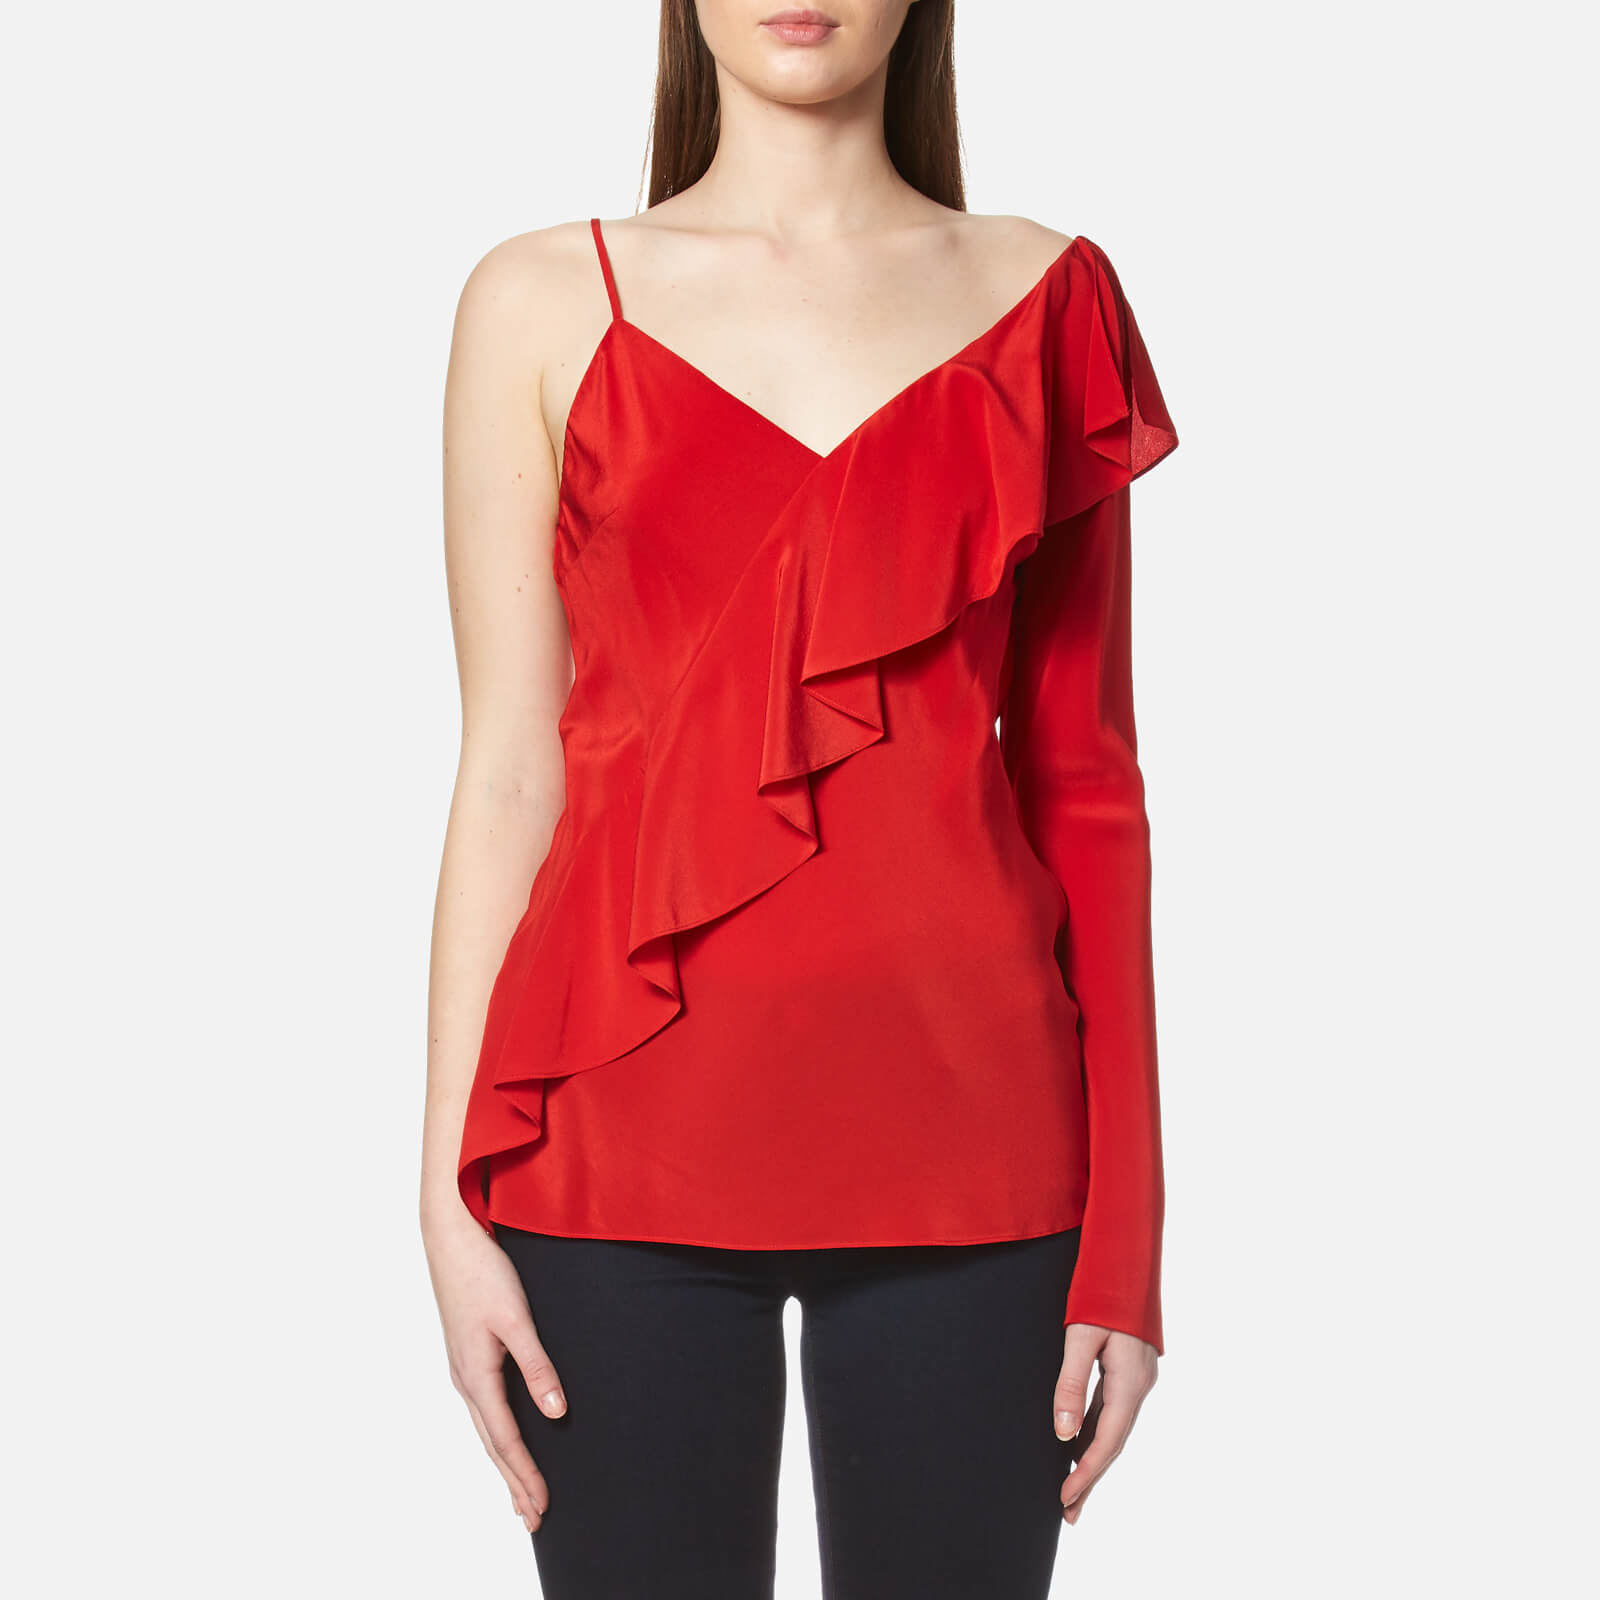 ee47f0c38f738 Diane von Furstenberg Women's Asymmetric Sleeveless Ruffle Front Blouse -  Dare Red - Free UK Delivery over £50